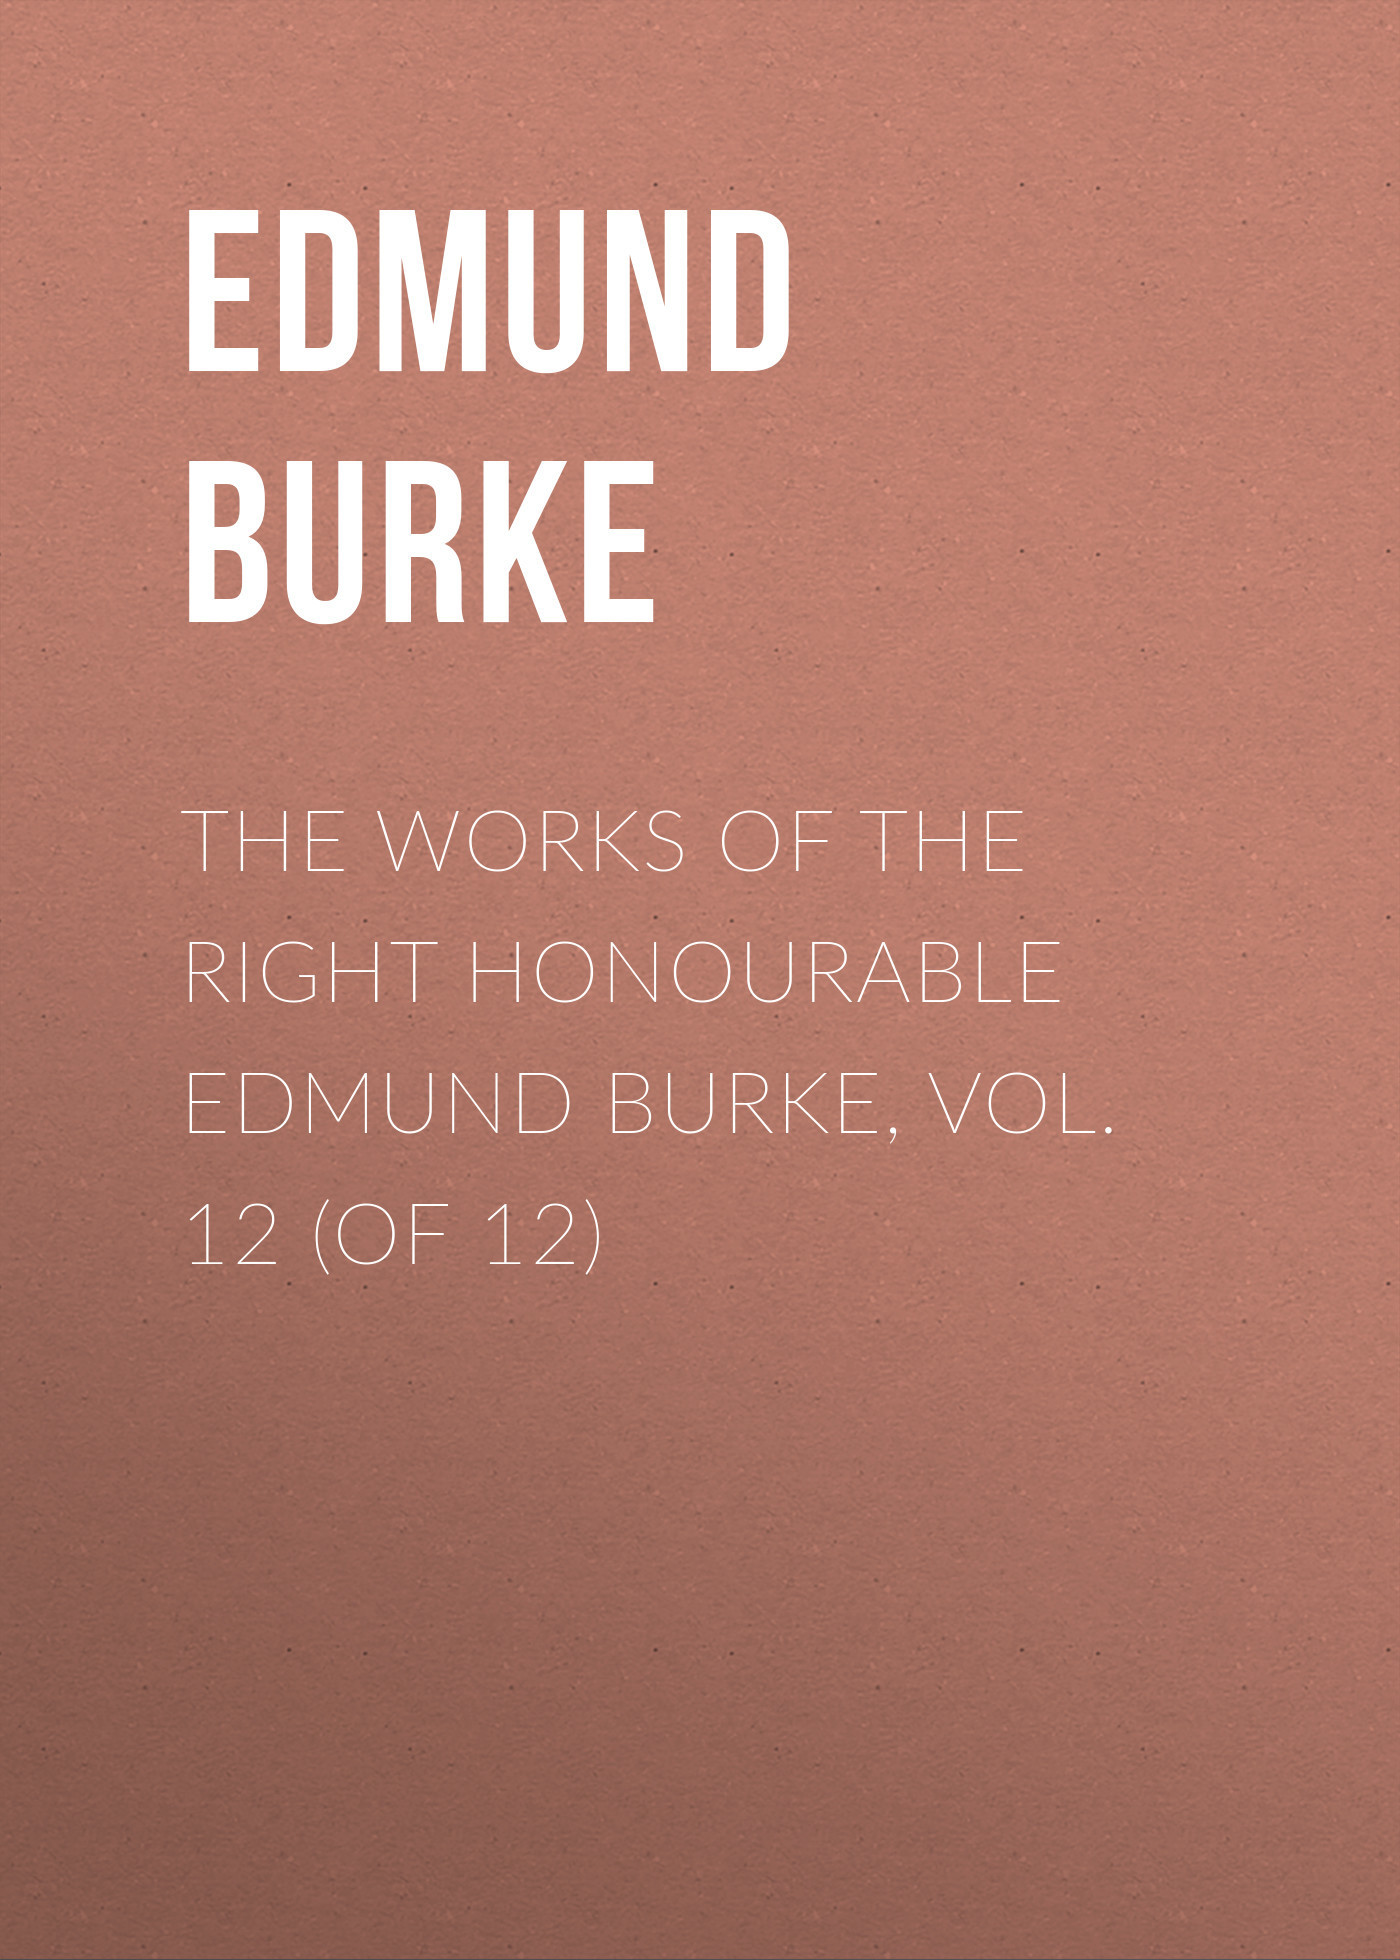 Edmund Burke The Works of the Right Honourable Edmund Burke, Vol. 12 (of 12) edmund burke the works of the right honourable edmund burke vol 09 of 12